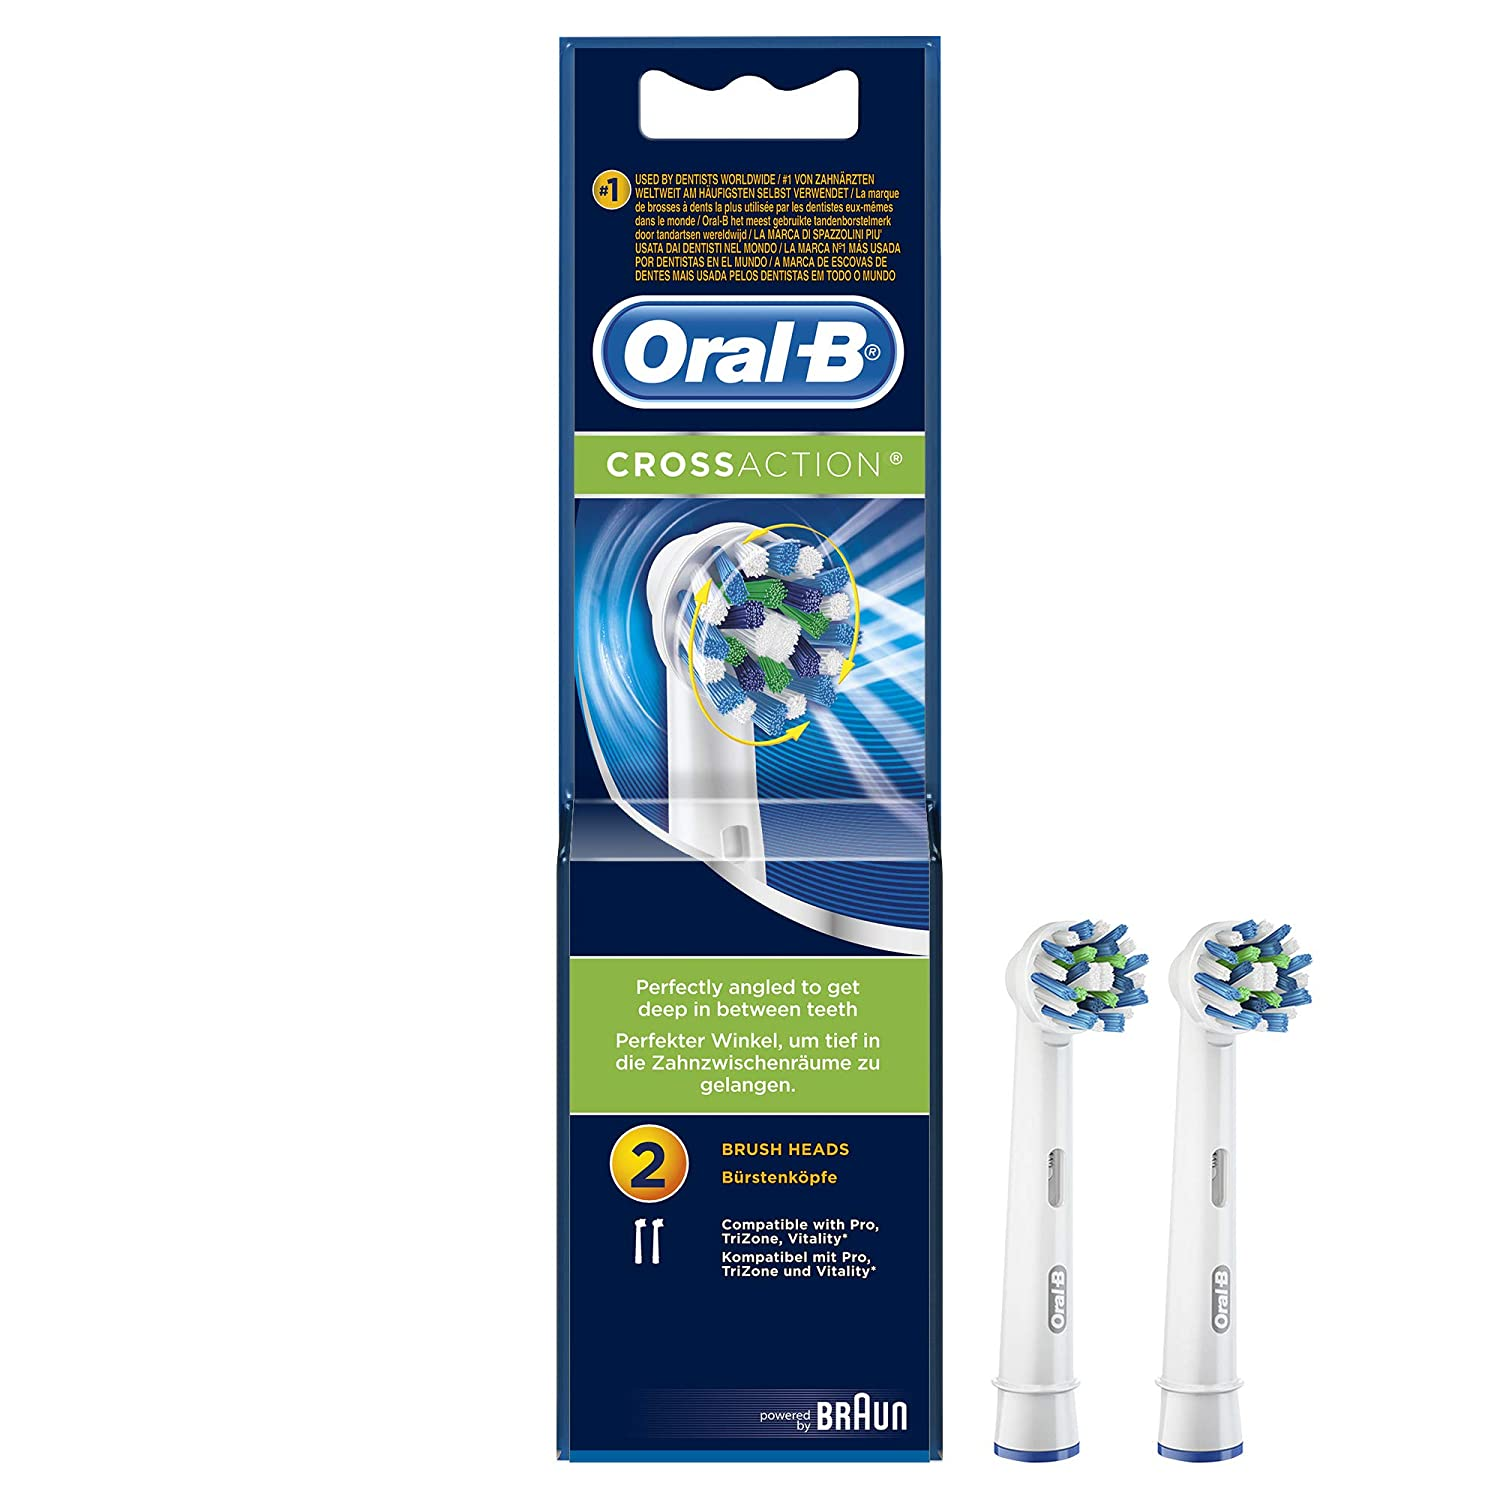 Oral-B Vitality 100 White Criss Cross Bundle Pack - Electric Toothbrush and Replacement Heads Refills_(Pack of 2)